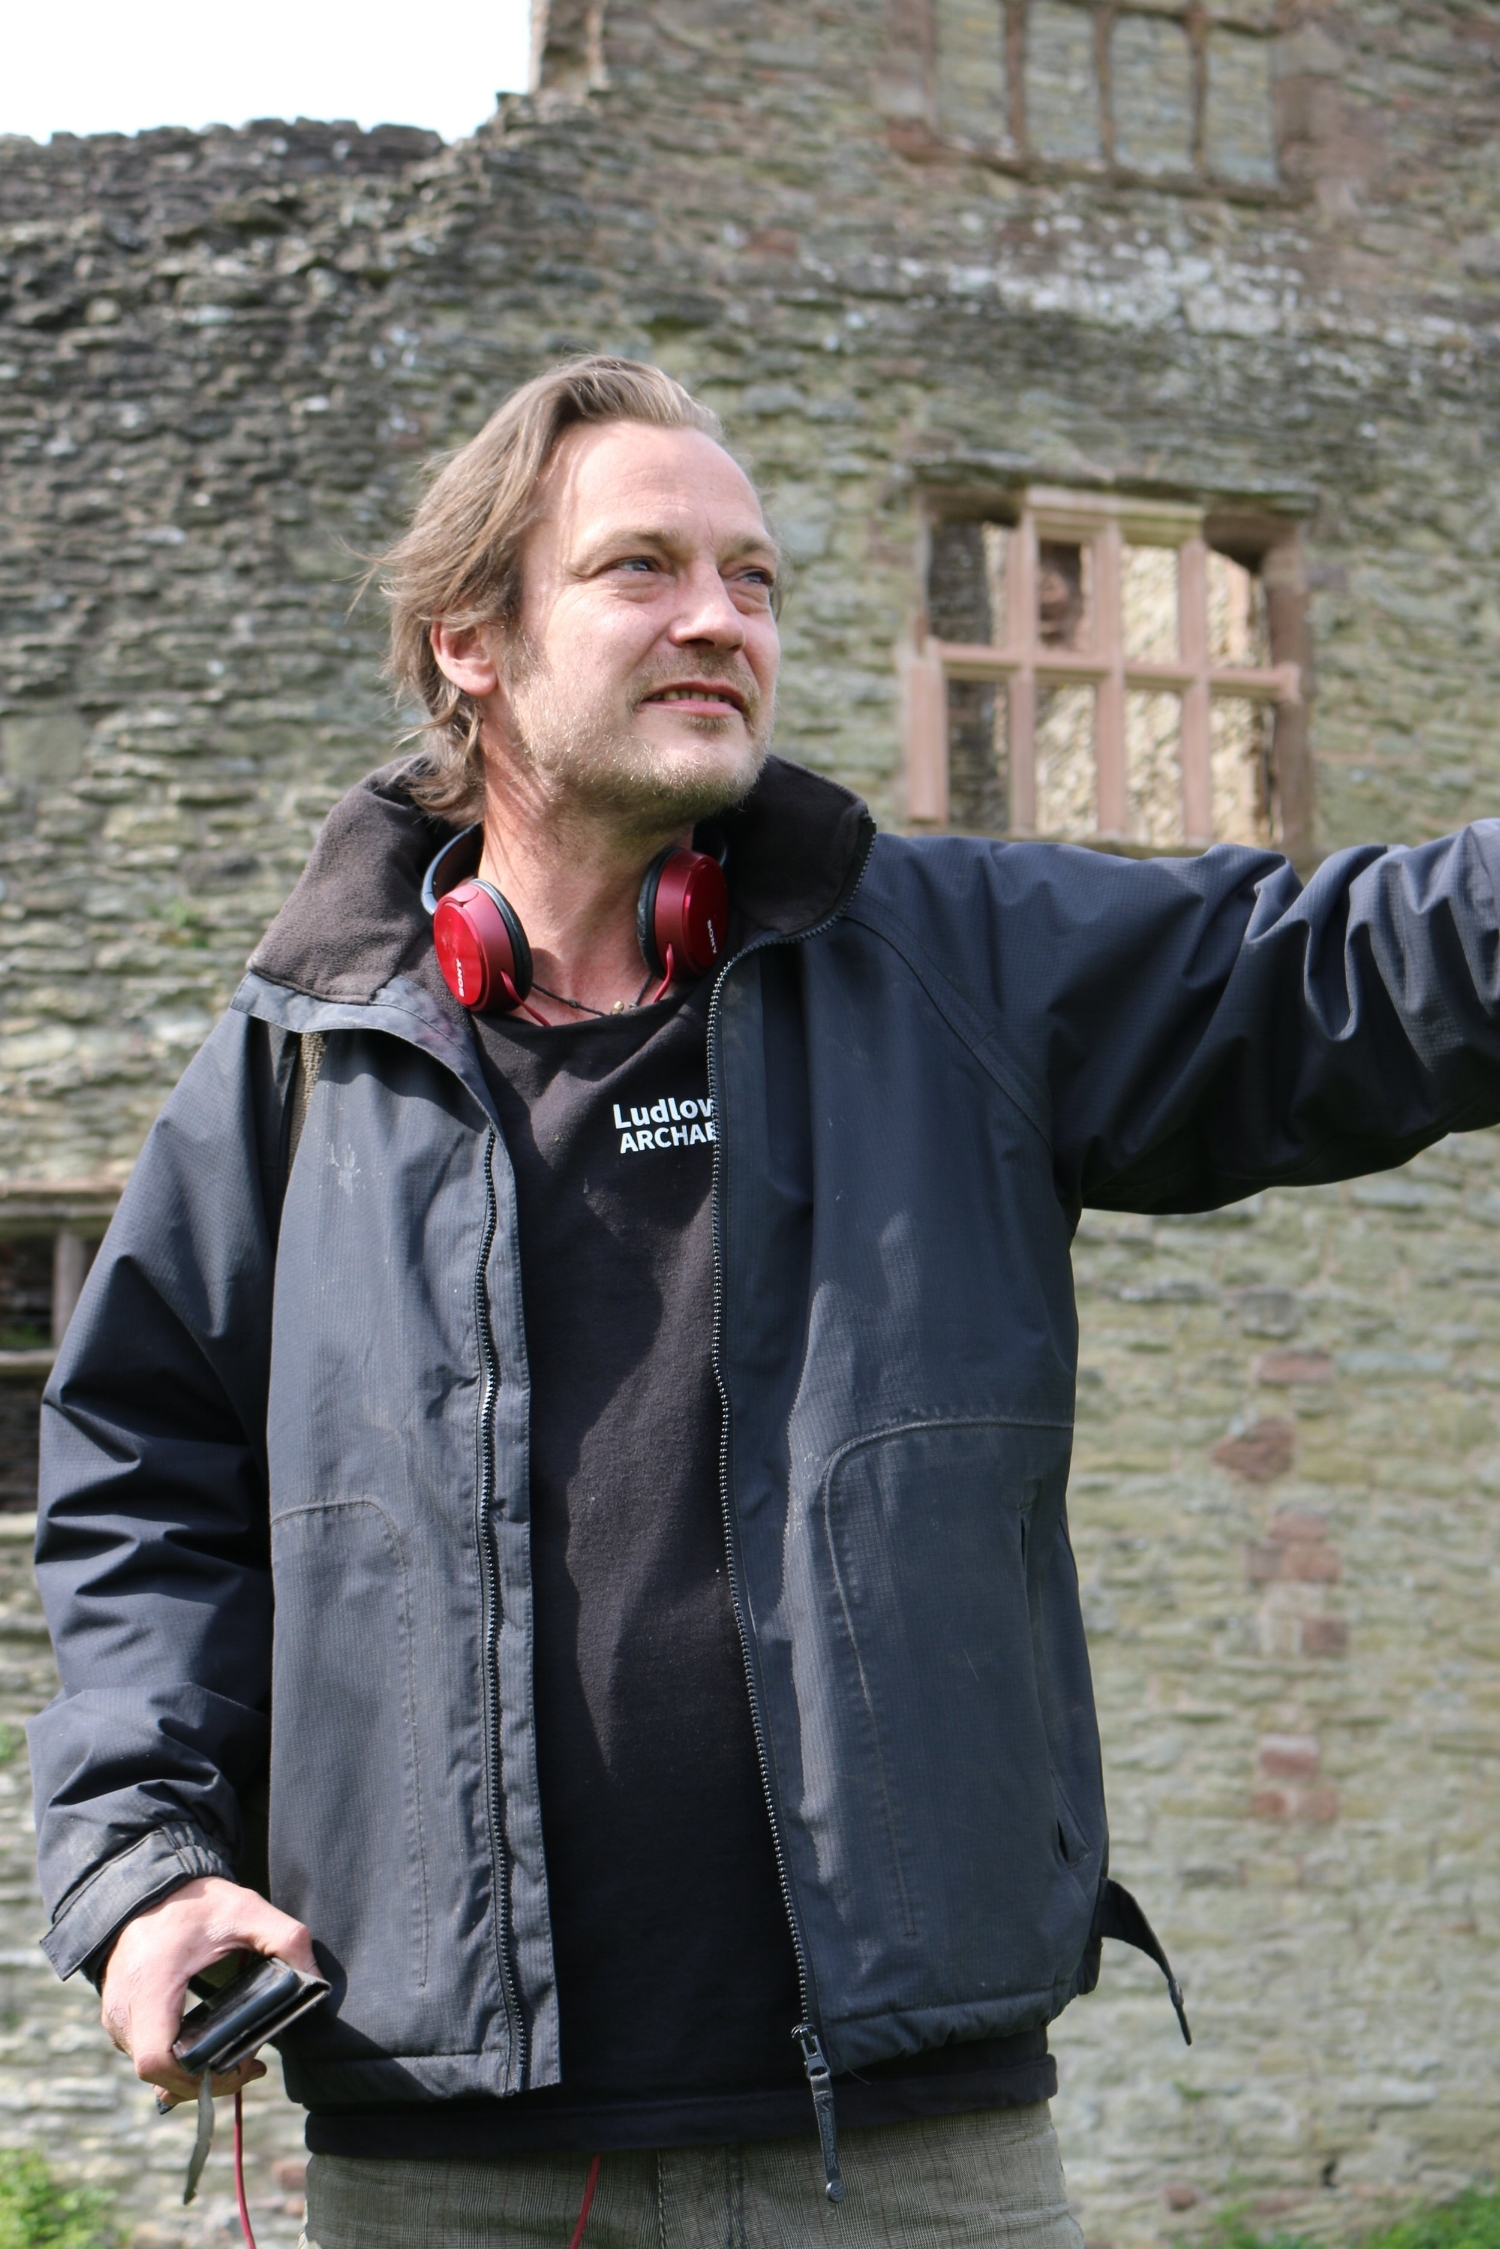 Leon Bracelin, resident archaeologist and guide at Ludlow Castle